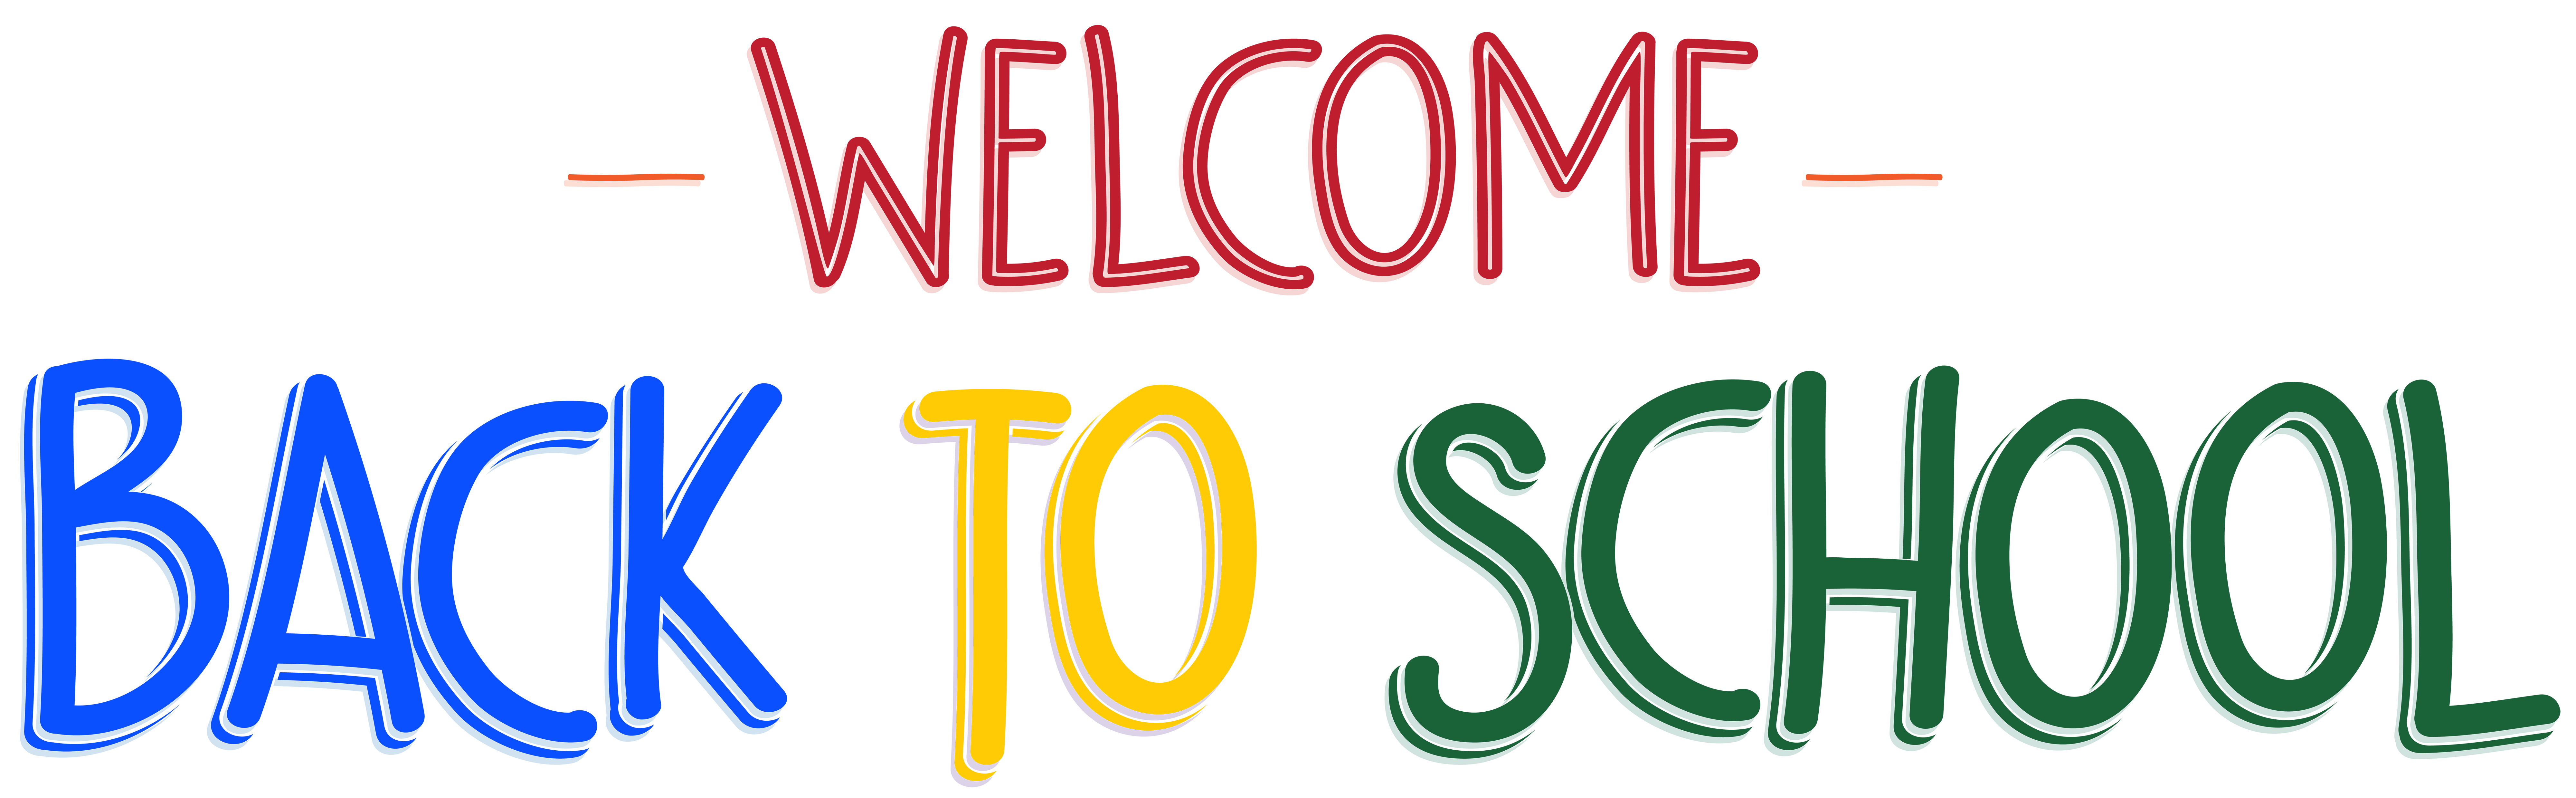 Welcome back to school clipart black and white banner library Welcome Back to School PNG Clip Art Image | Gallery Yopriceville ... banner library